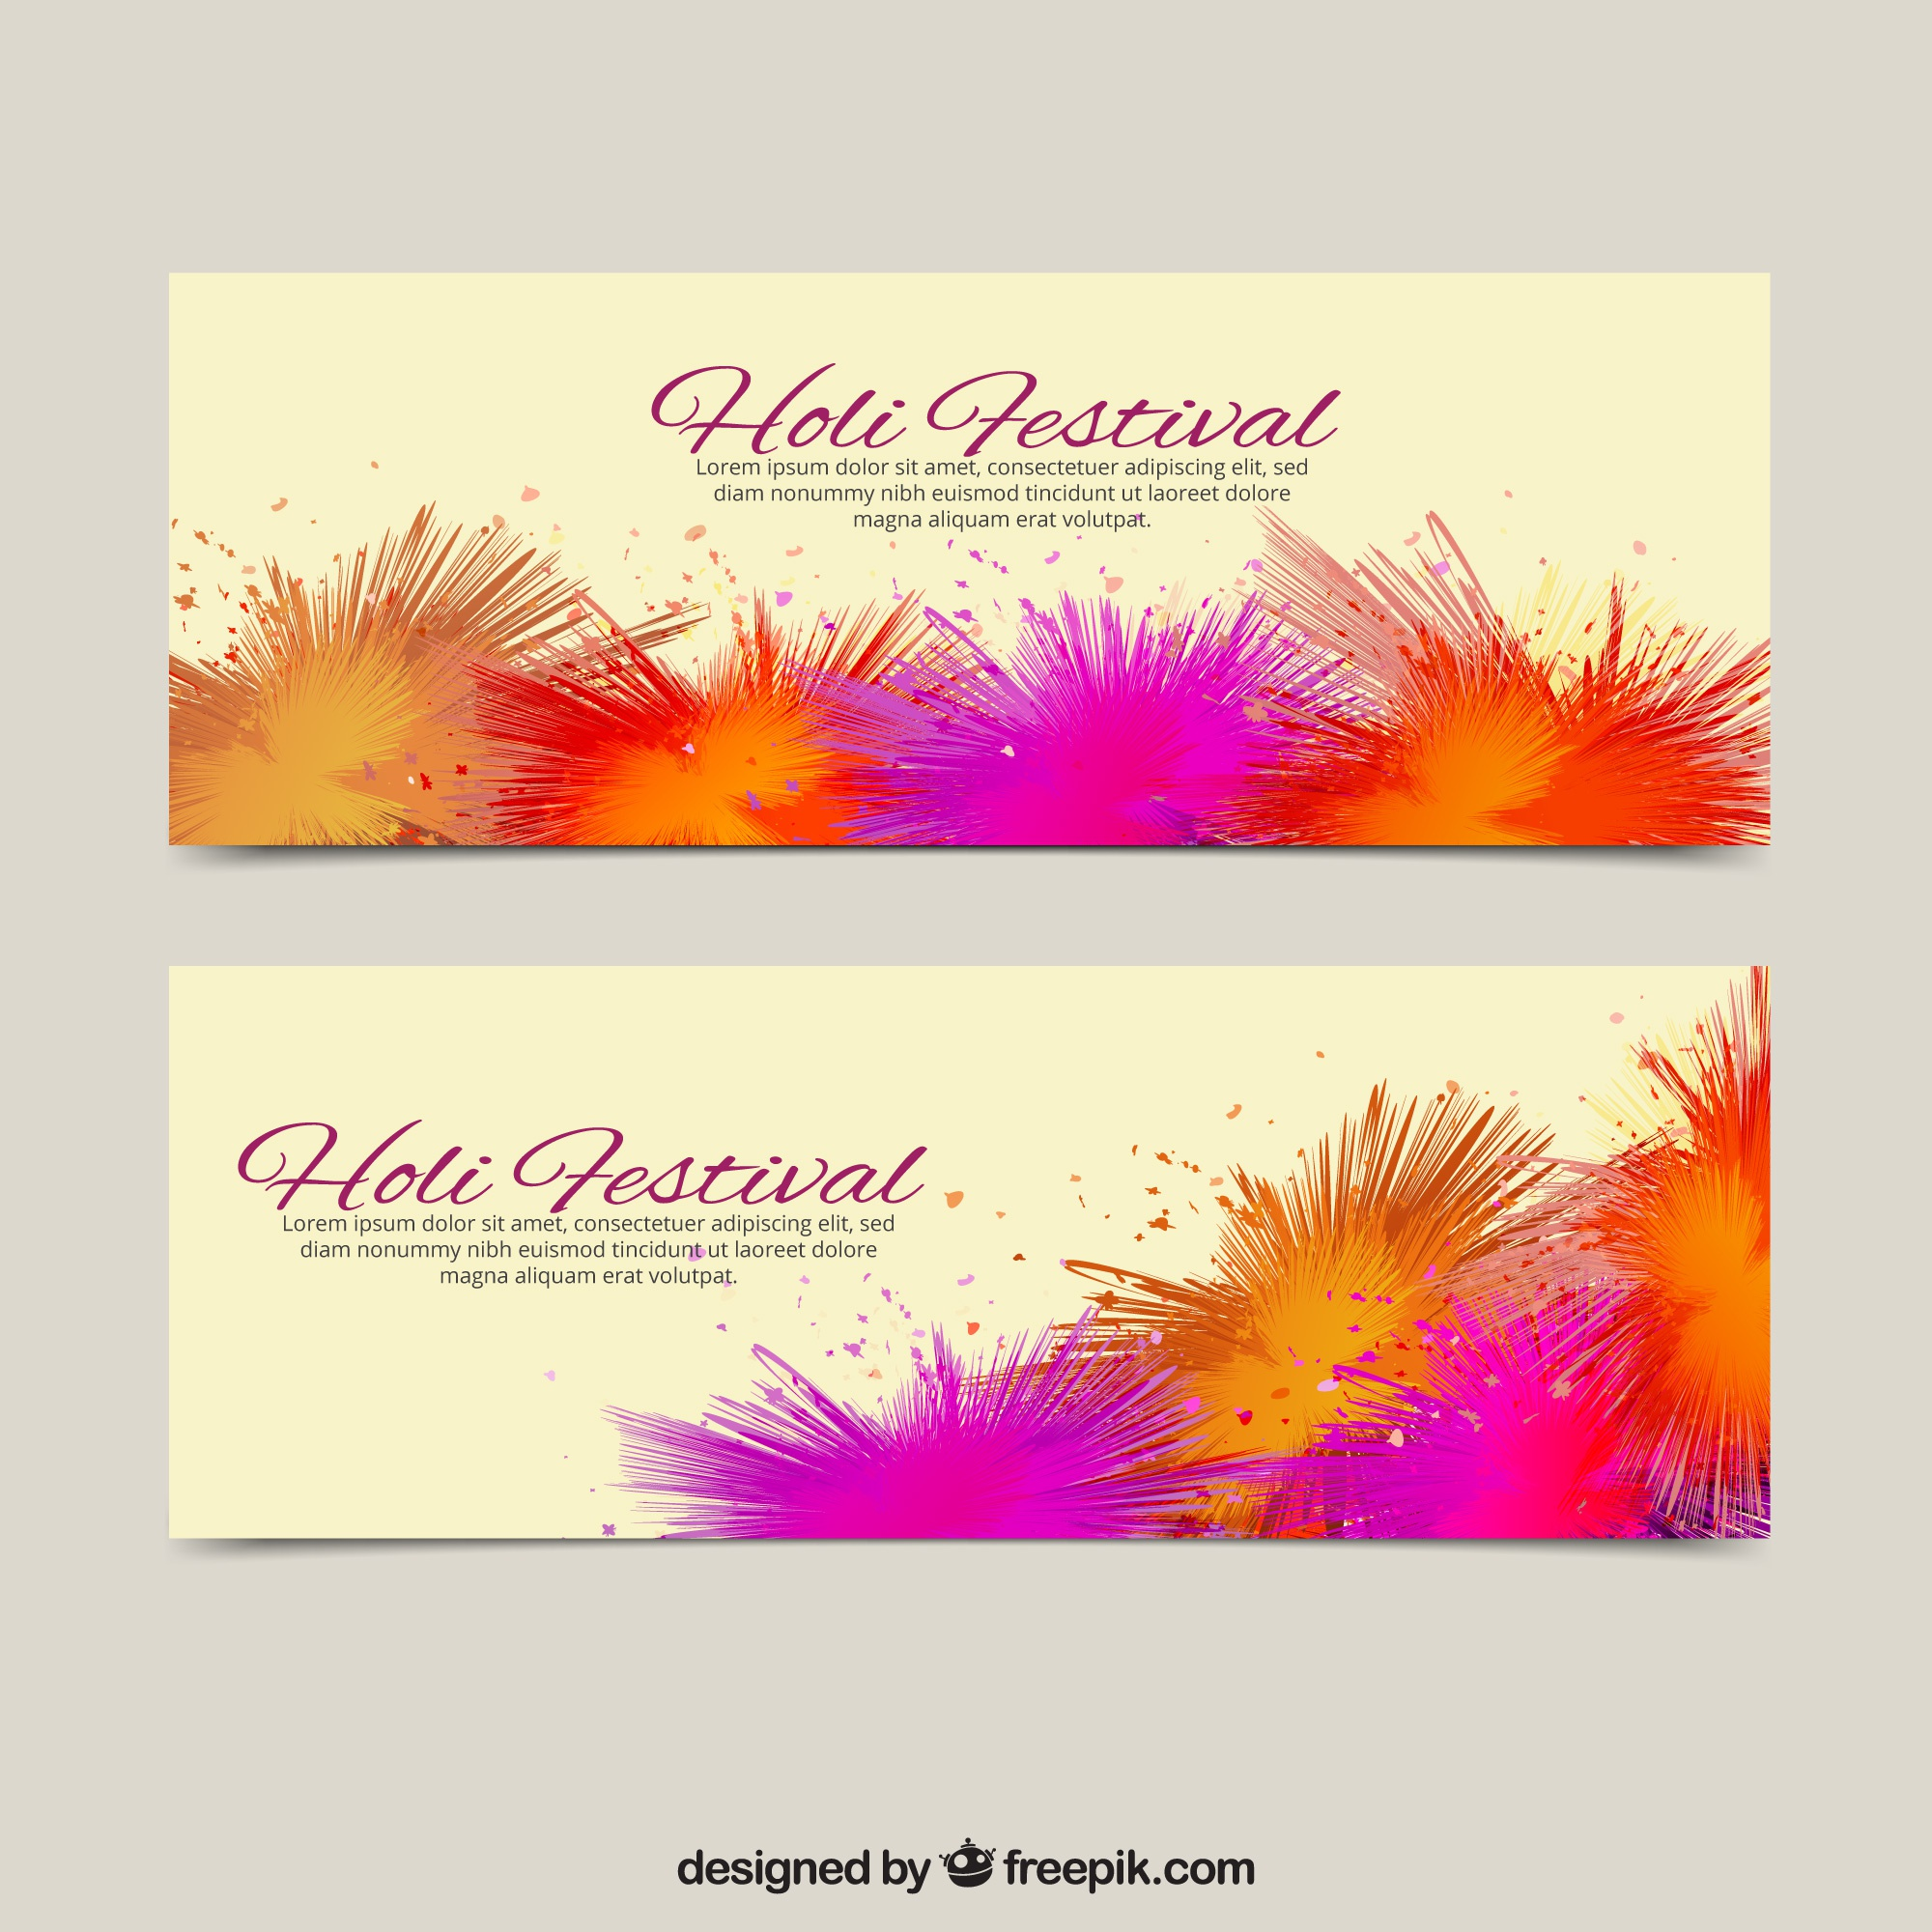 Holi festival banners with purple and orange stains